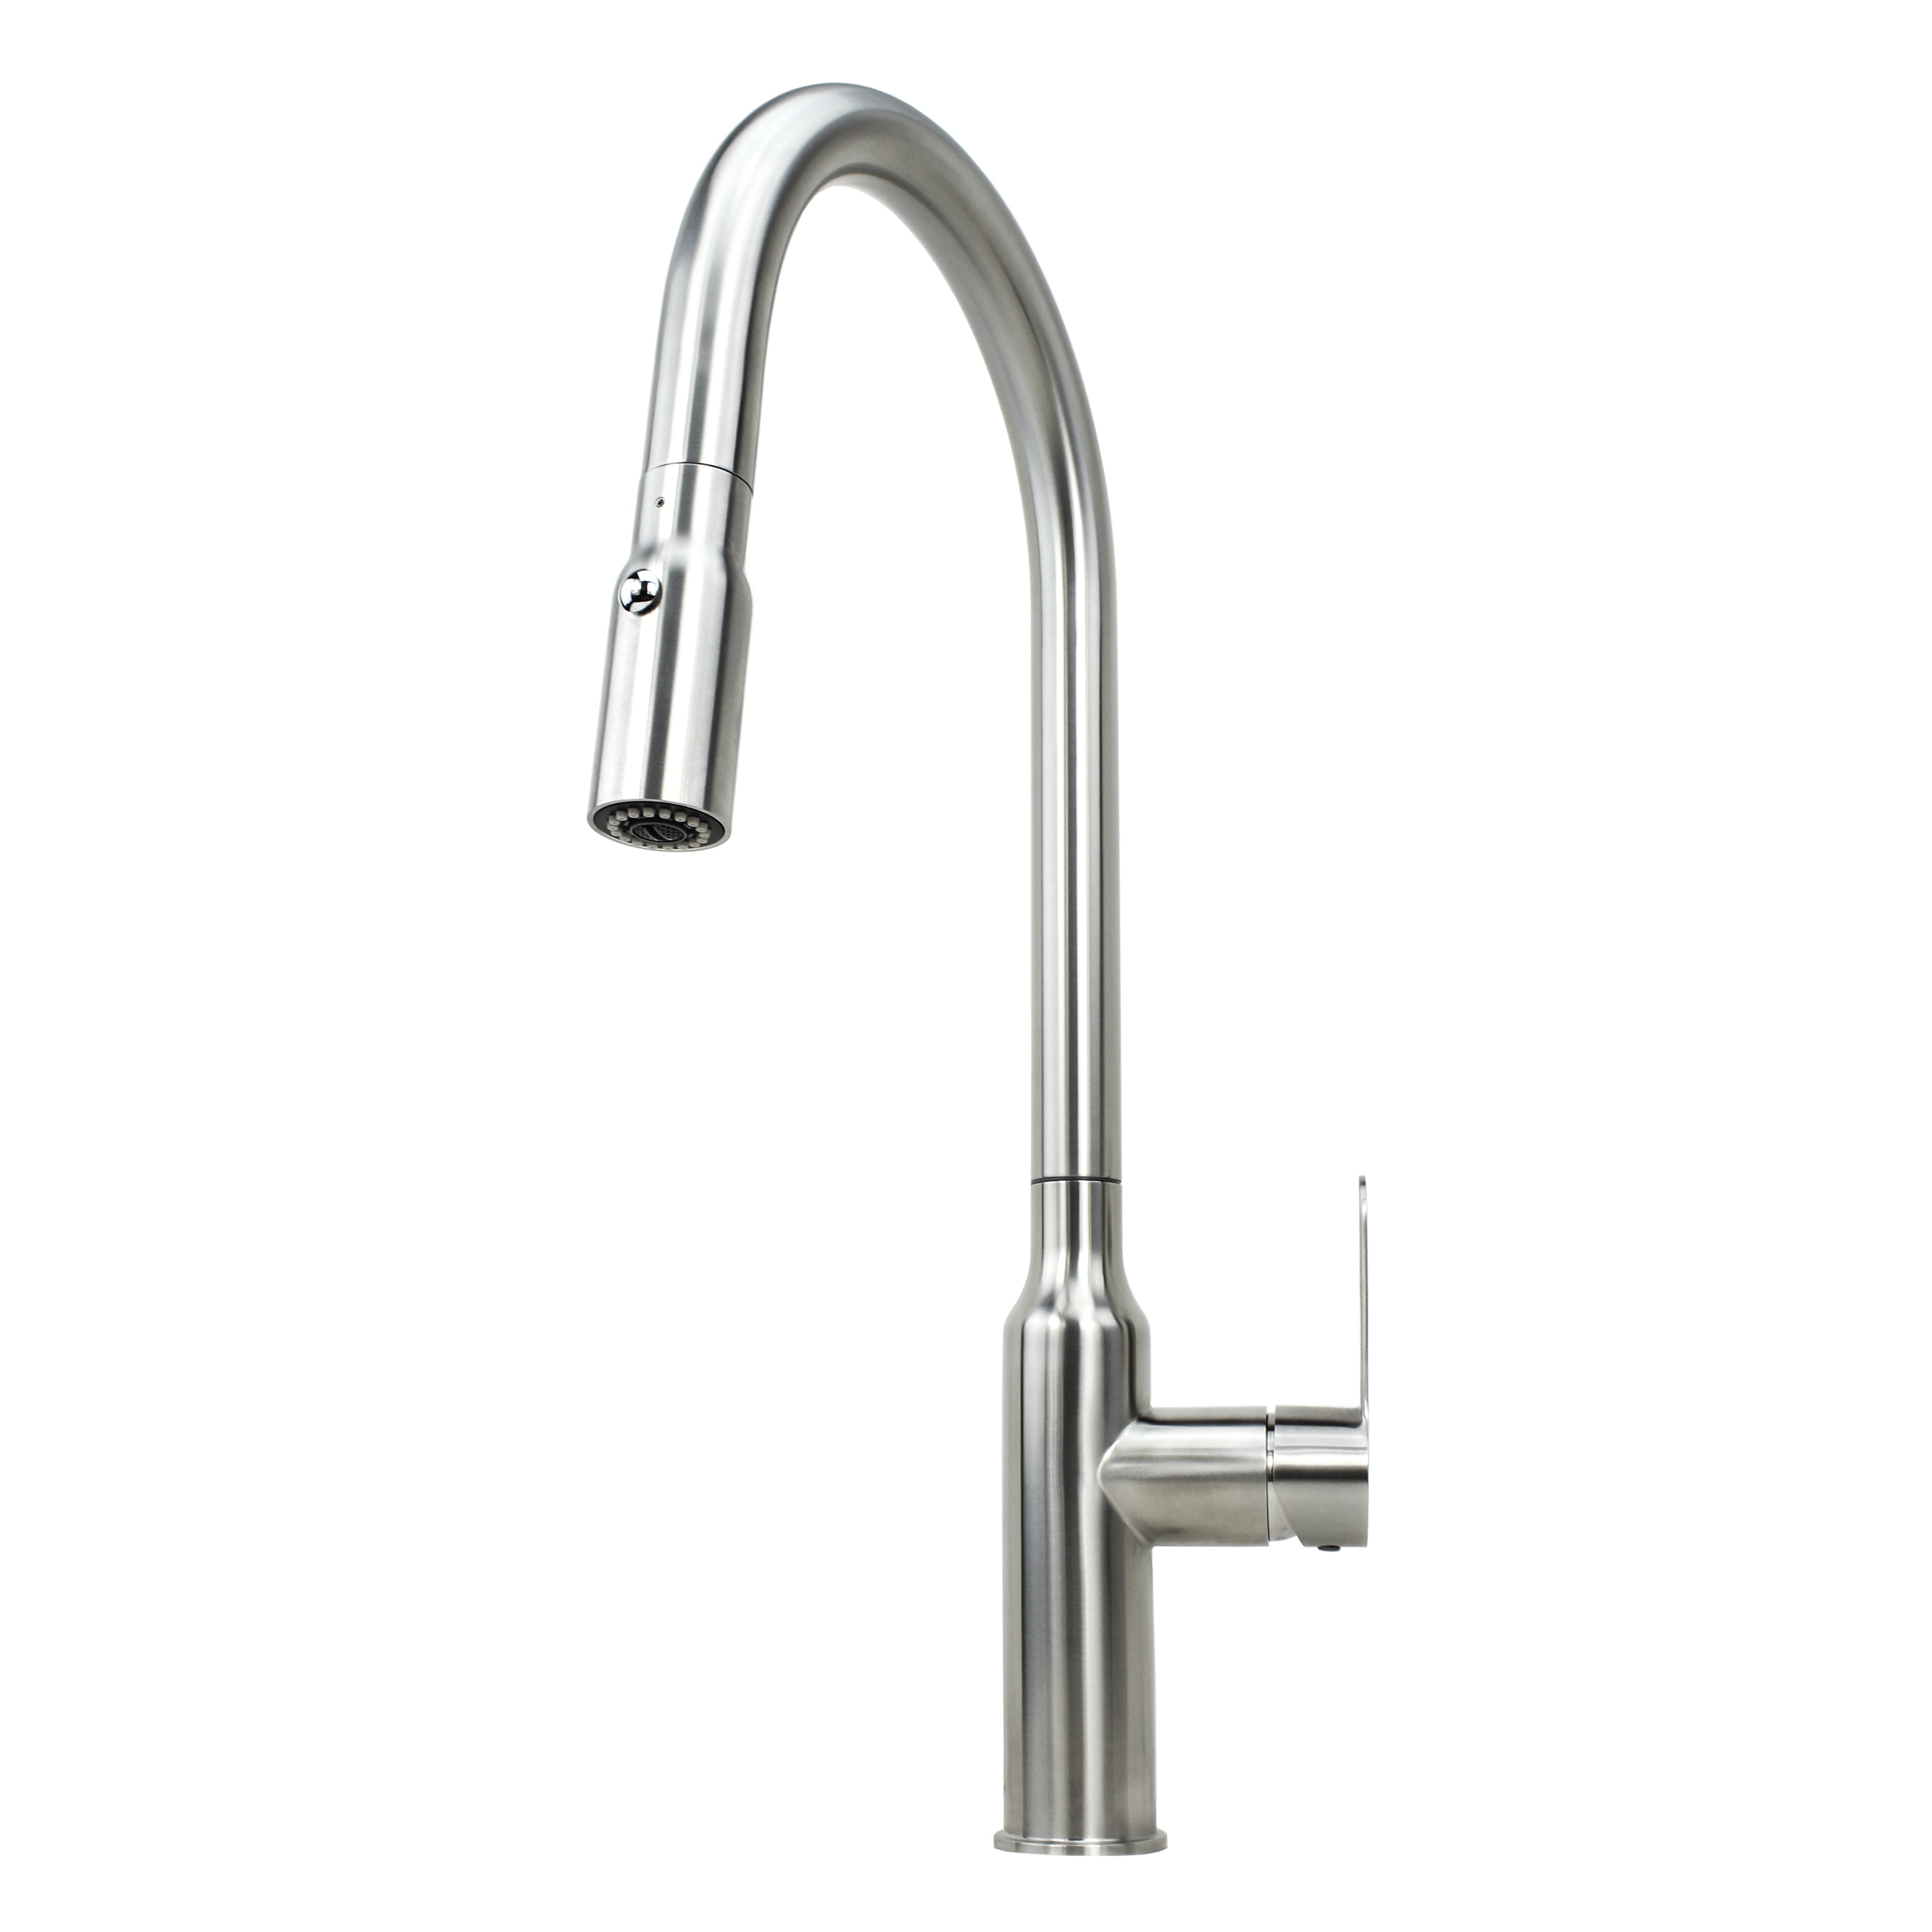 Chess Design Lead Free Brushed Nickel Kitchen Faucet with Pull Out